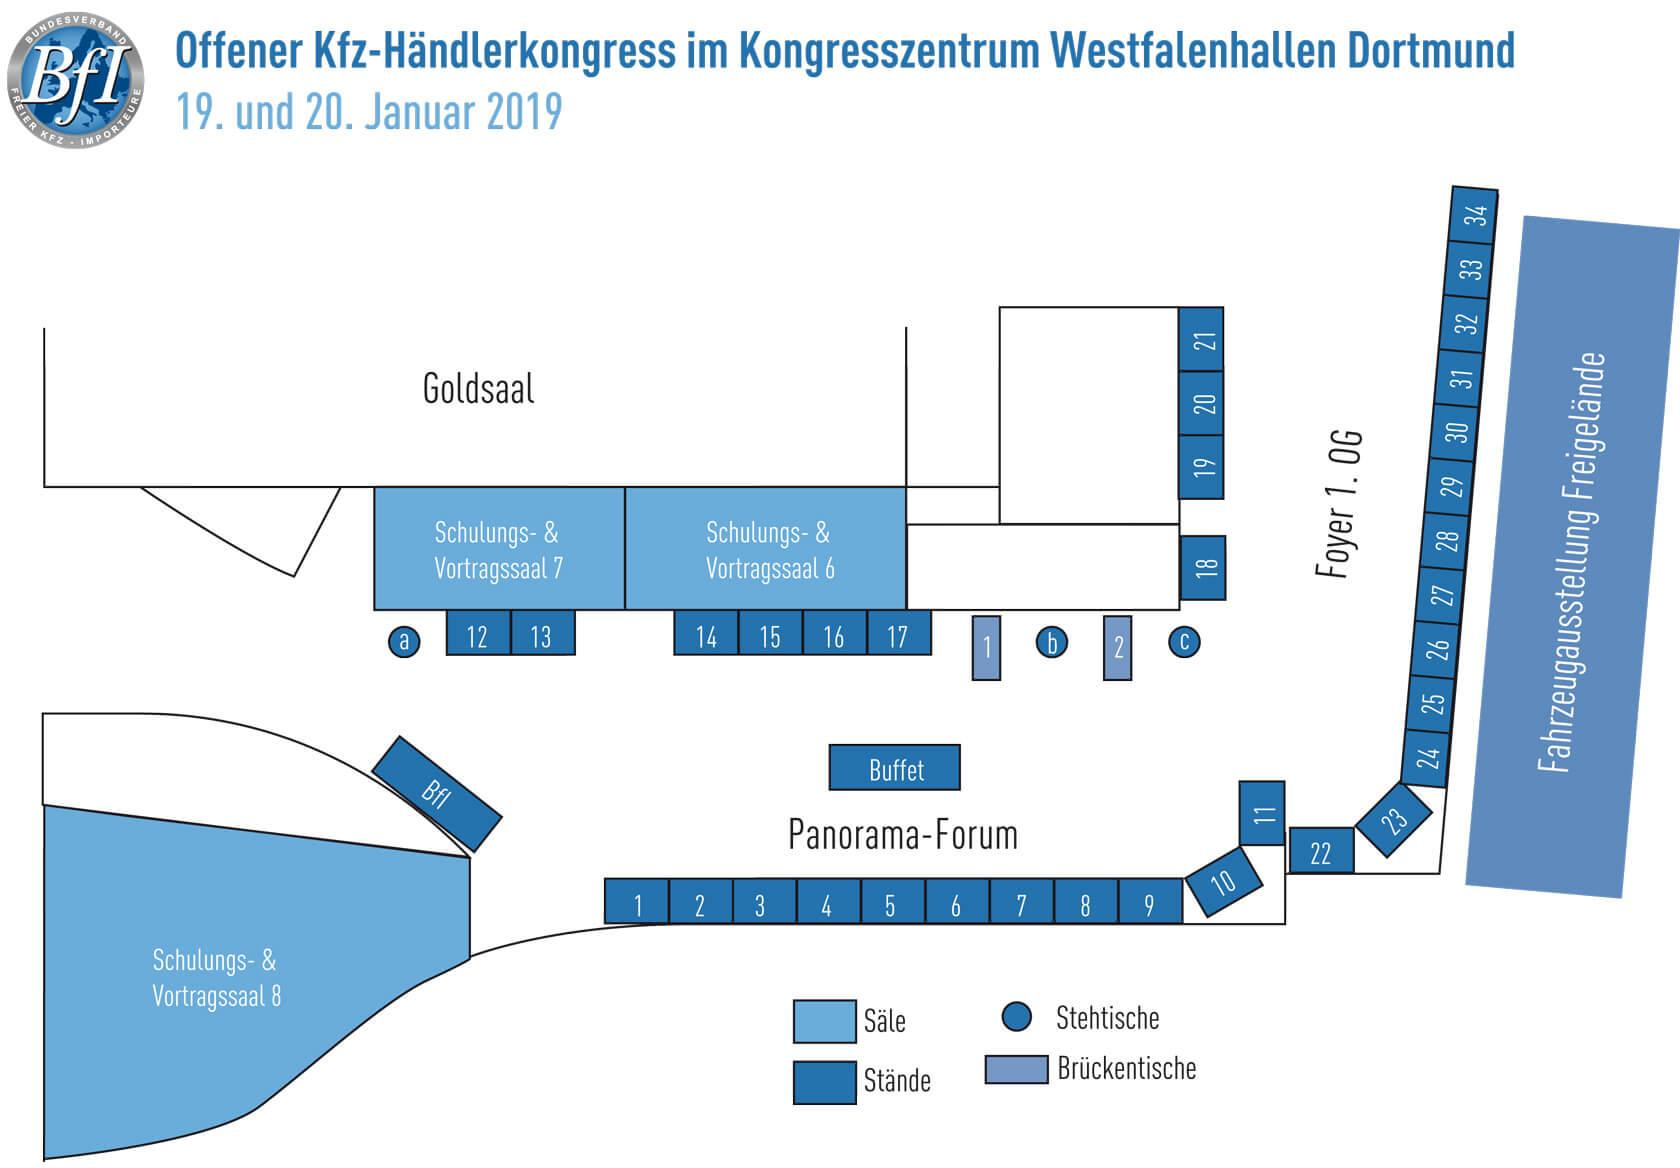 Internationaler Händlerkongress im Kongresszentrum Westfalenhallen Dortmund 19. und 20. Januar 2019